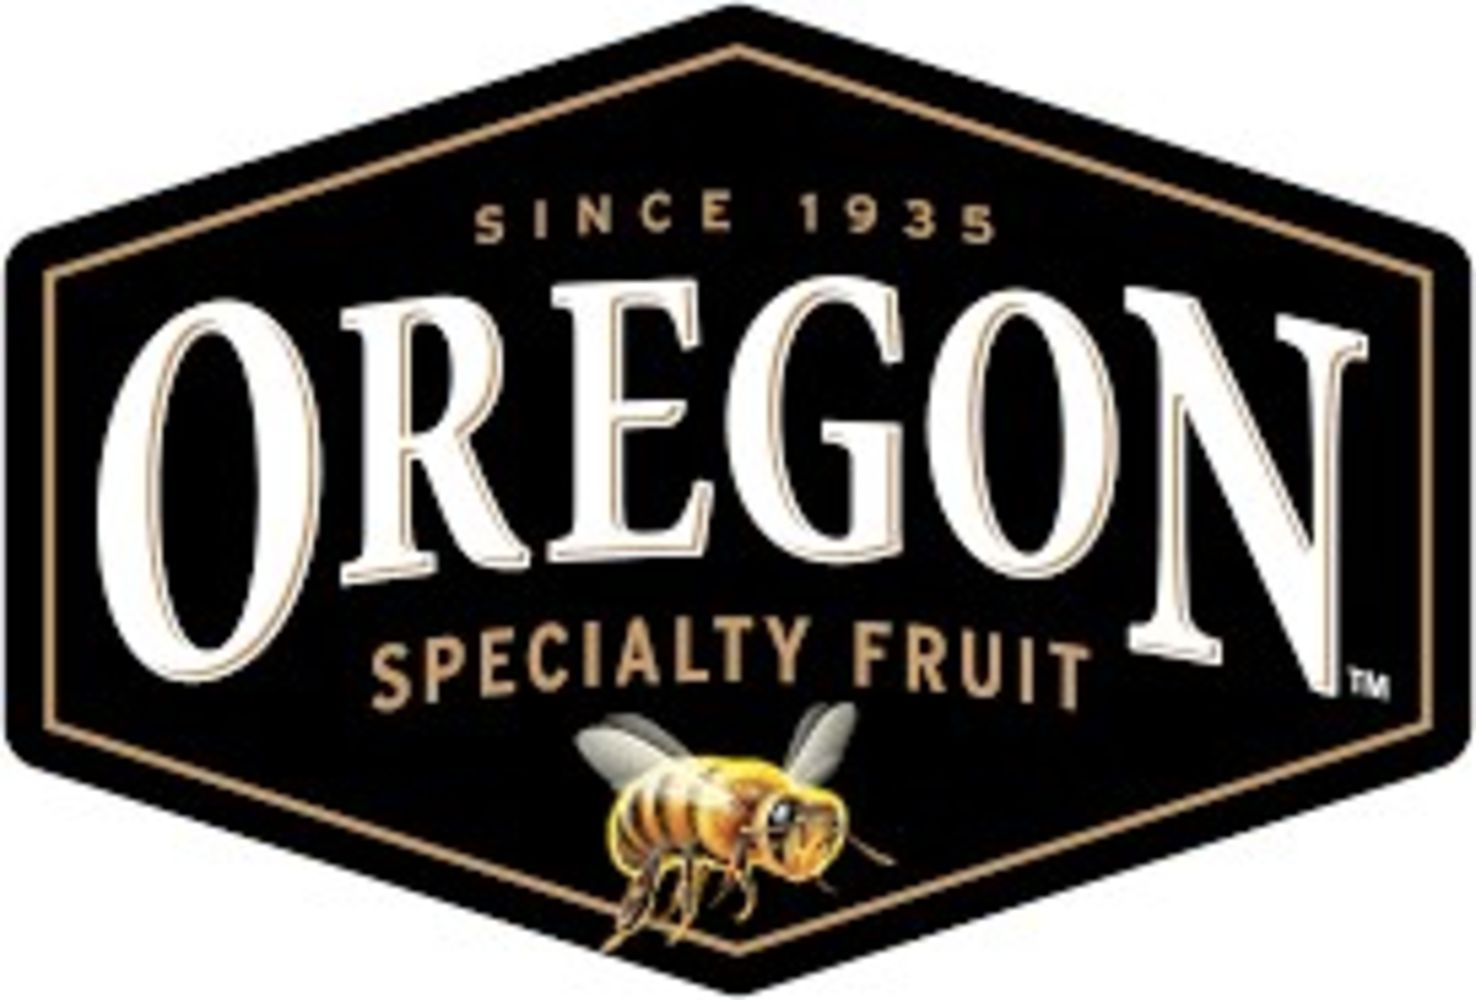 Surplus Equipment to the Ongoing Needs of Oregon Specialty Fruit